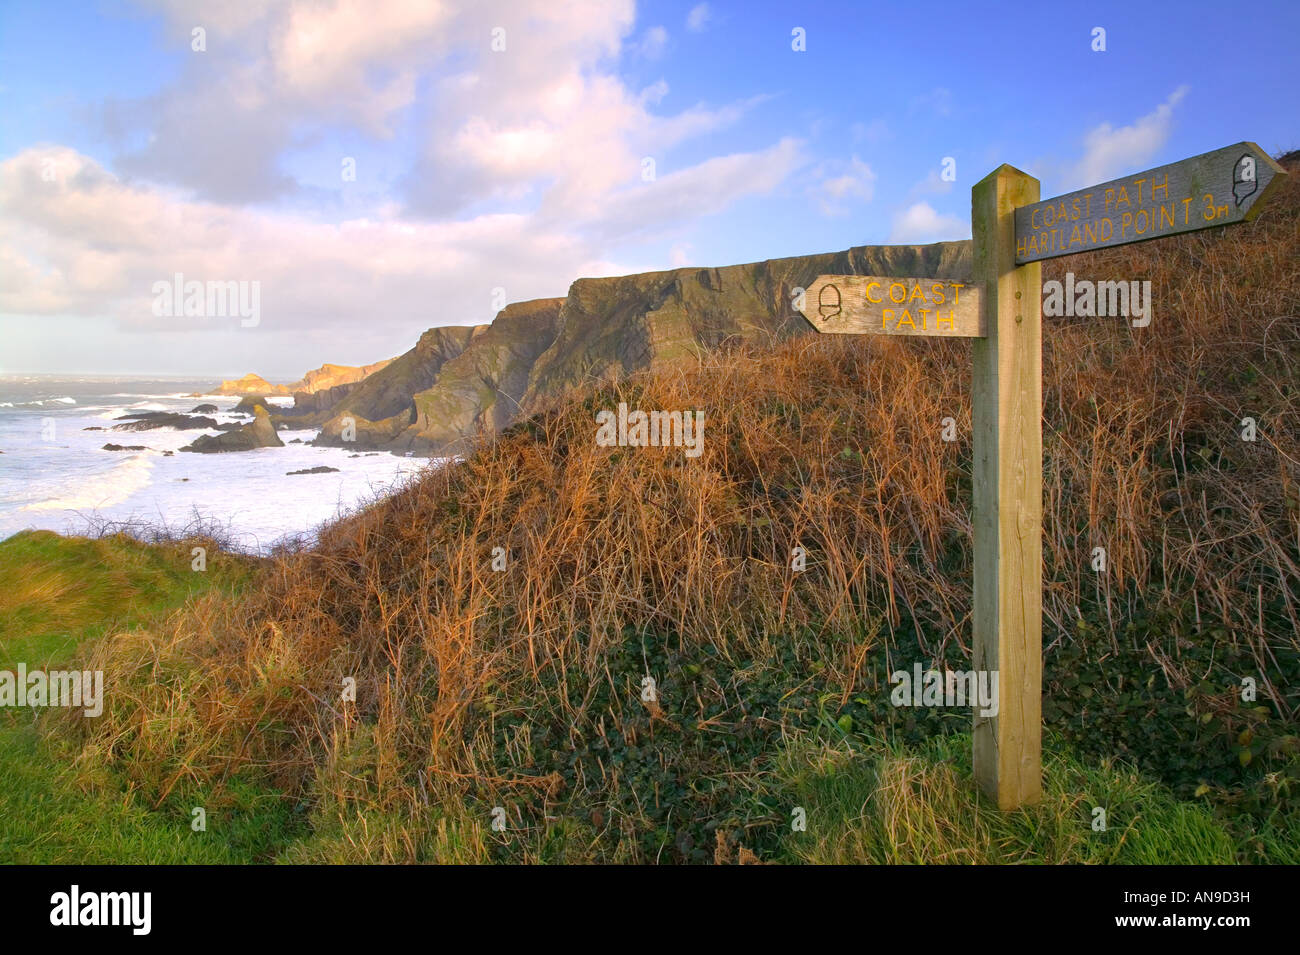 Signpost for the South West Coast Path at Hartland Devon England with views of the cliffs Stock Photo